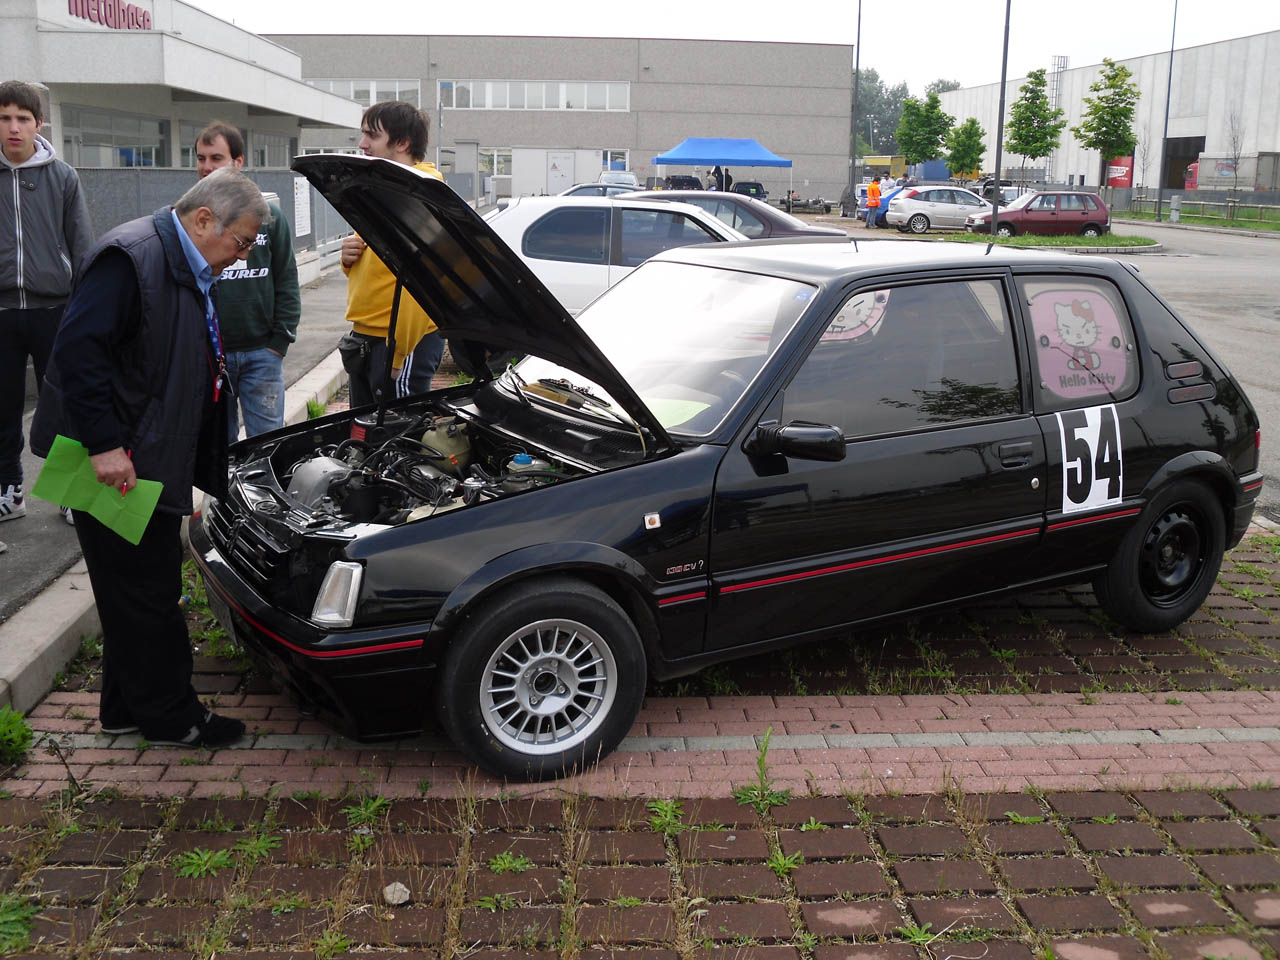 1988 peugeot 205 gti 1 8 mile drag racing timeslip 0 60 for Housse 205 gti